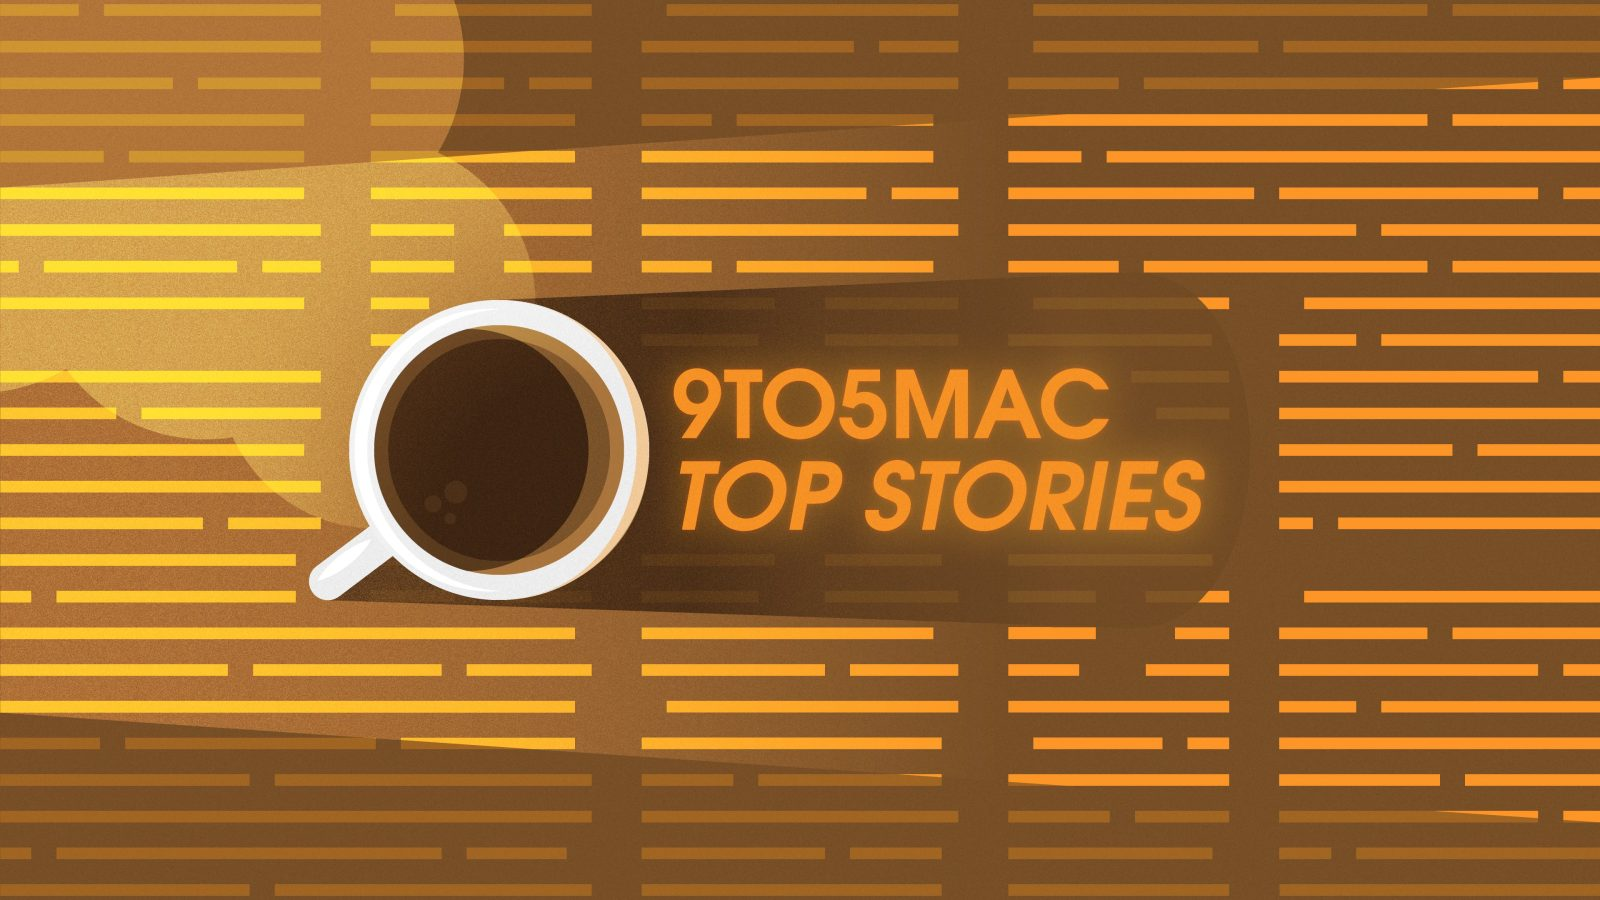 This week's top stories: iOS 14 widgets go viral, iPhone 12 mini rumors, and more